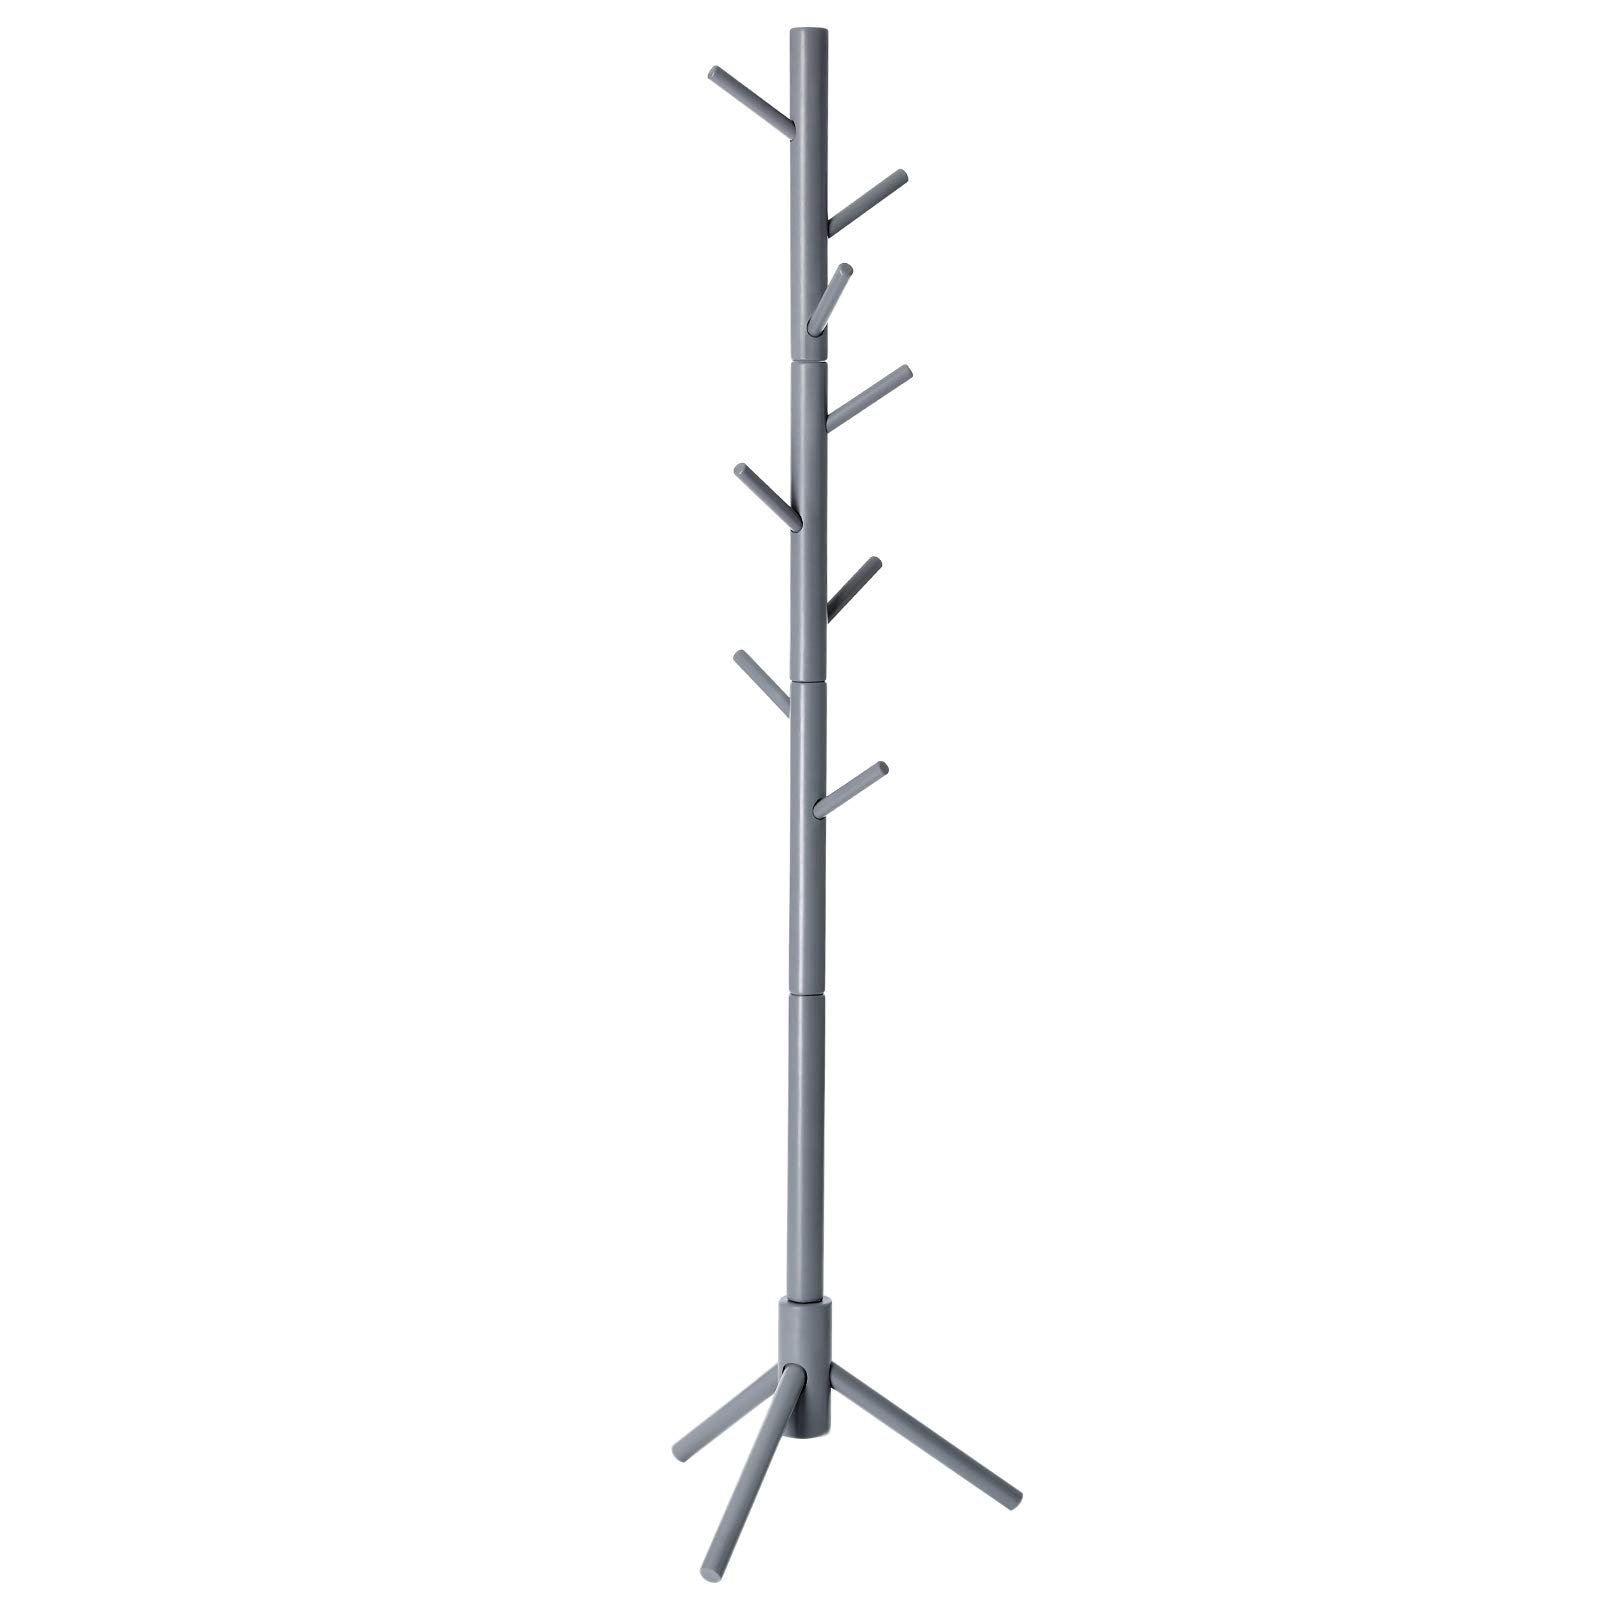 VASAGLE Coat Rack with 8 Hooks, Solid Wood Coat Tree Free Standing, 18.5 Inch Dia Base, for Clothes, Hats, Handbags, Umbrella, Gray URCR04GY by VASAGLE